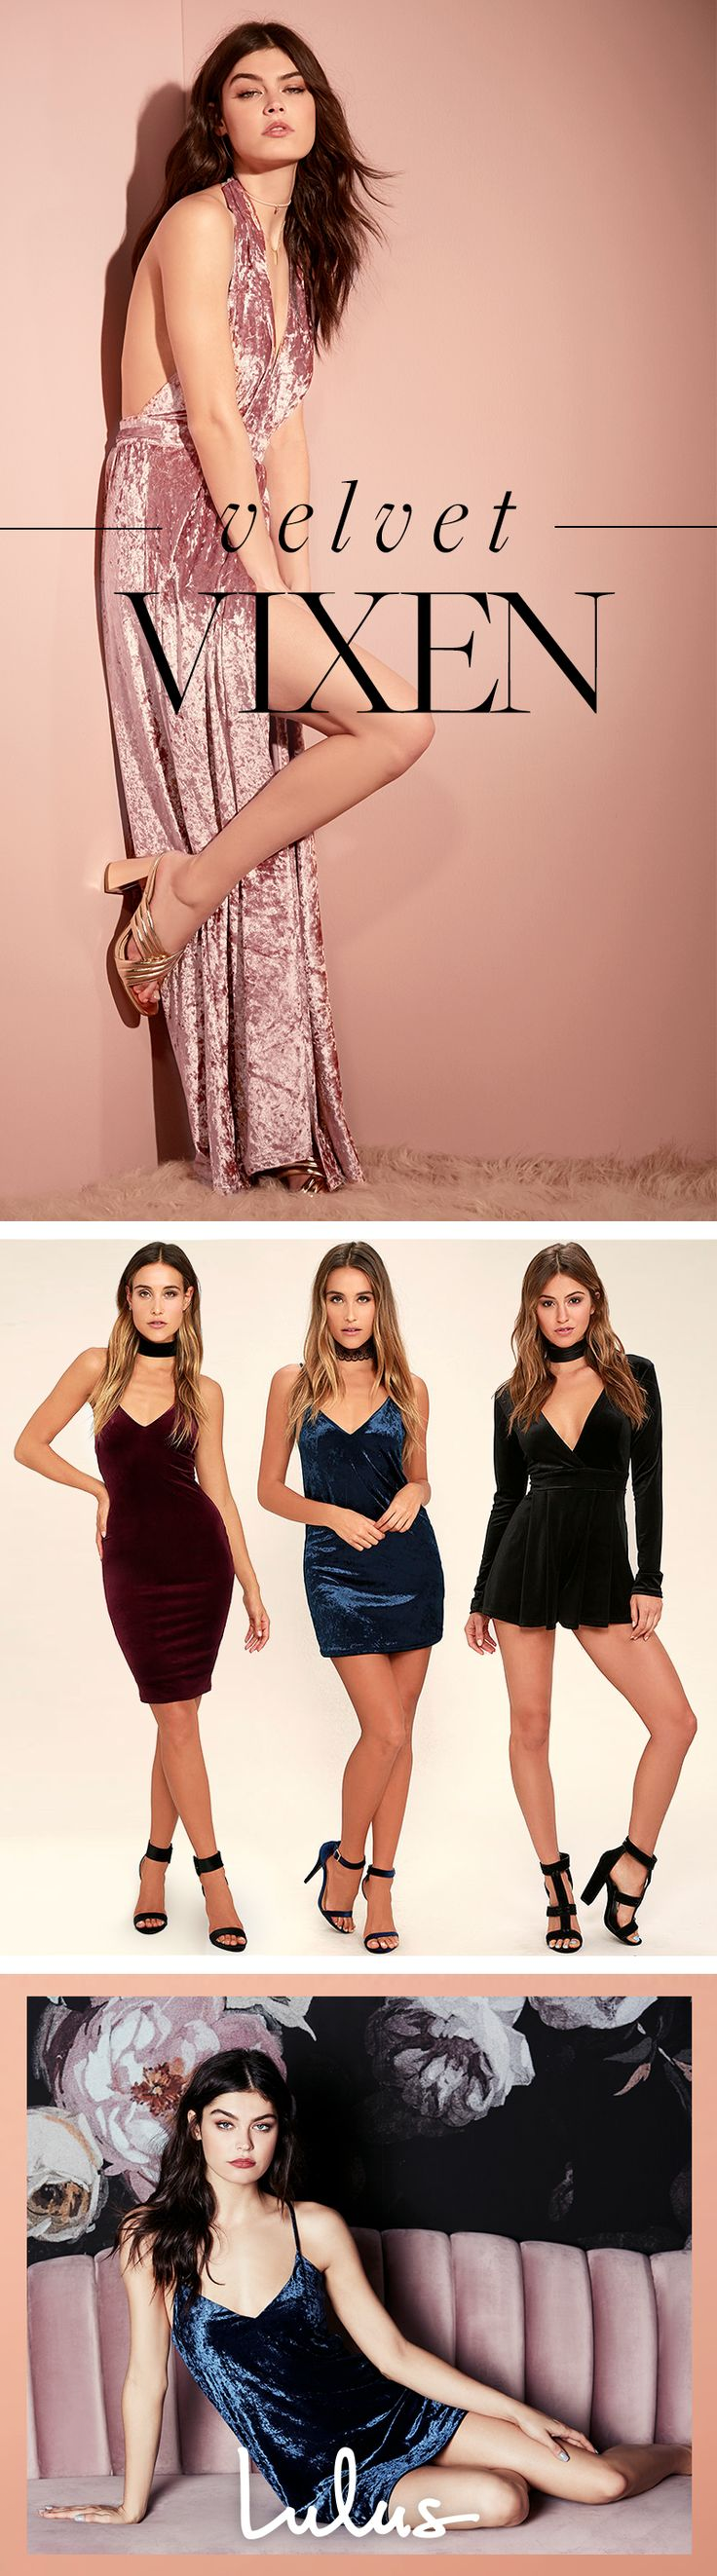 Formal events or just feeling fancy, these dresses provide the wow factor wherever you go! #lovelulus